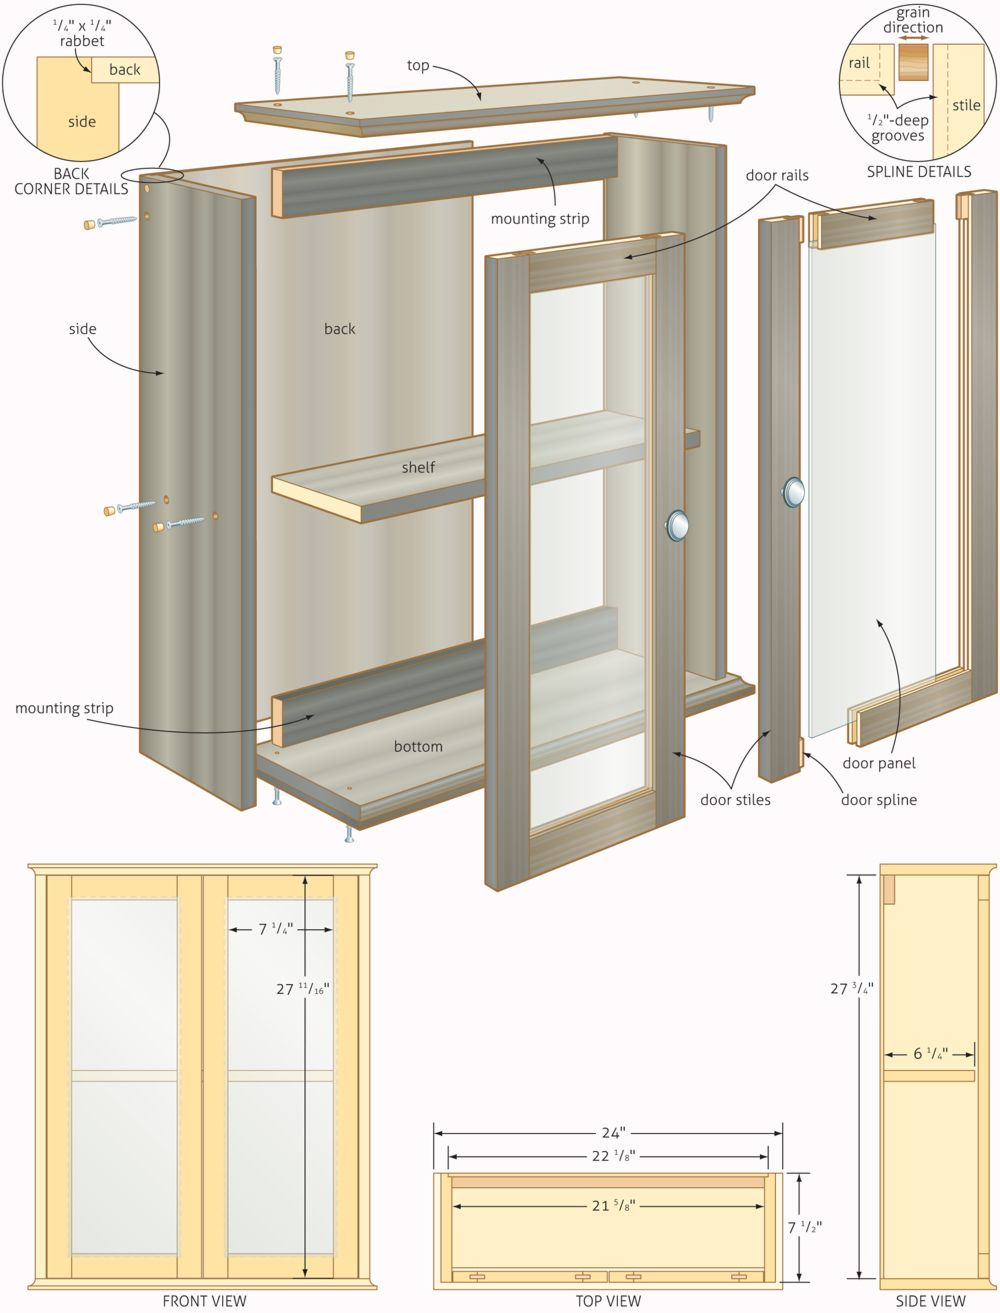 Free woodworking plans bathroom cabinets quick woodworking projects qq10 pinterest free - Bathroom cabinets for small spaces plan ...